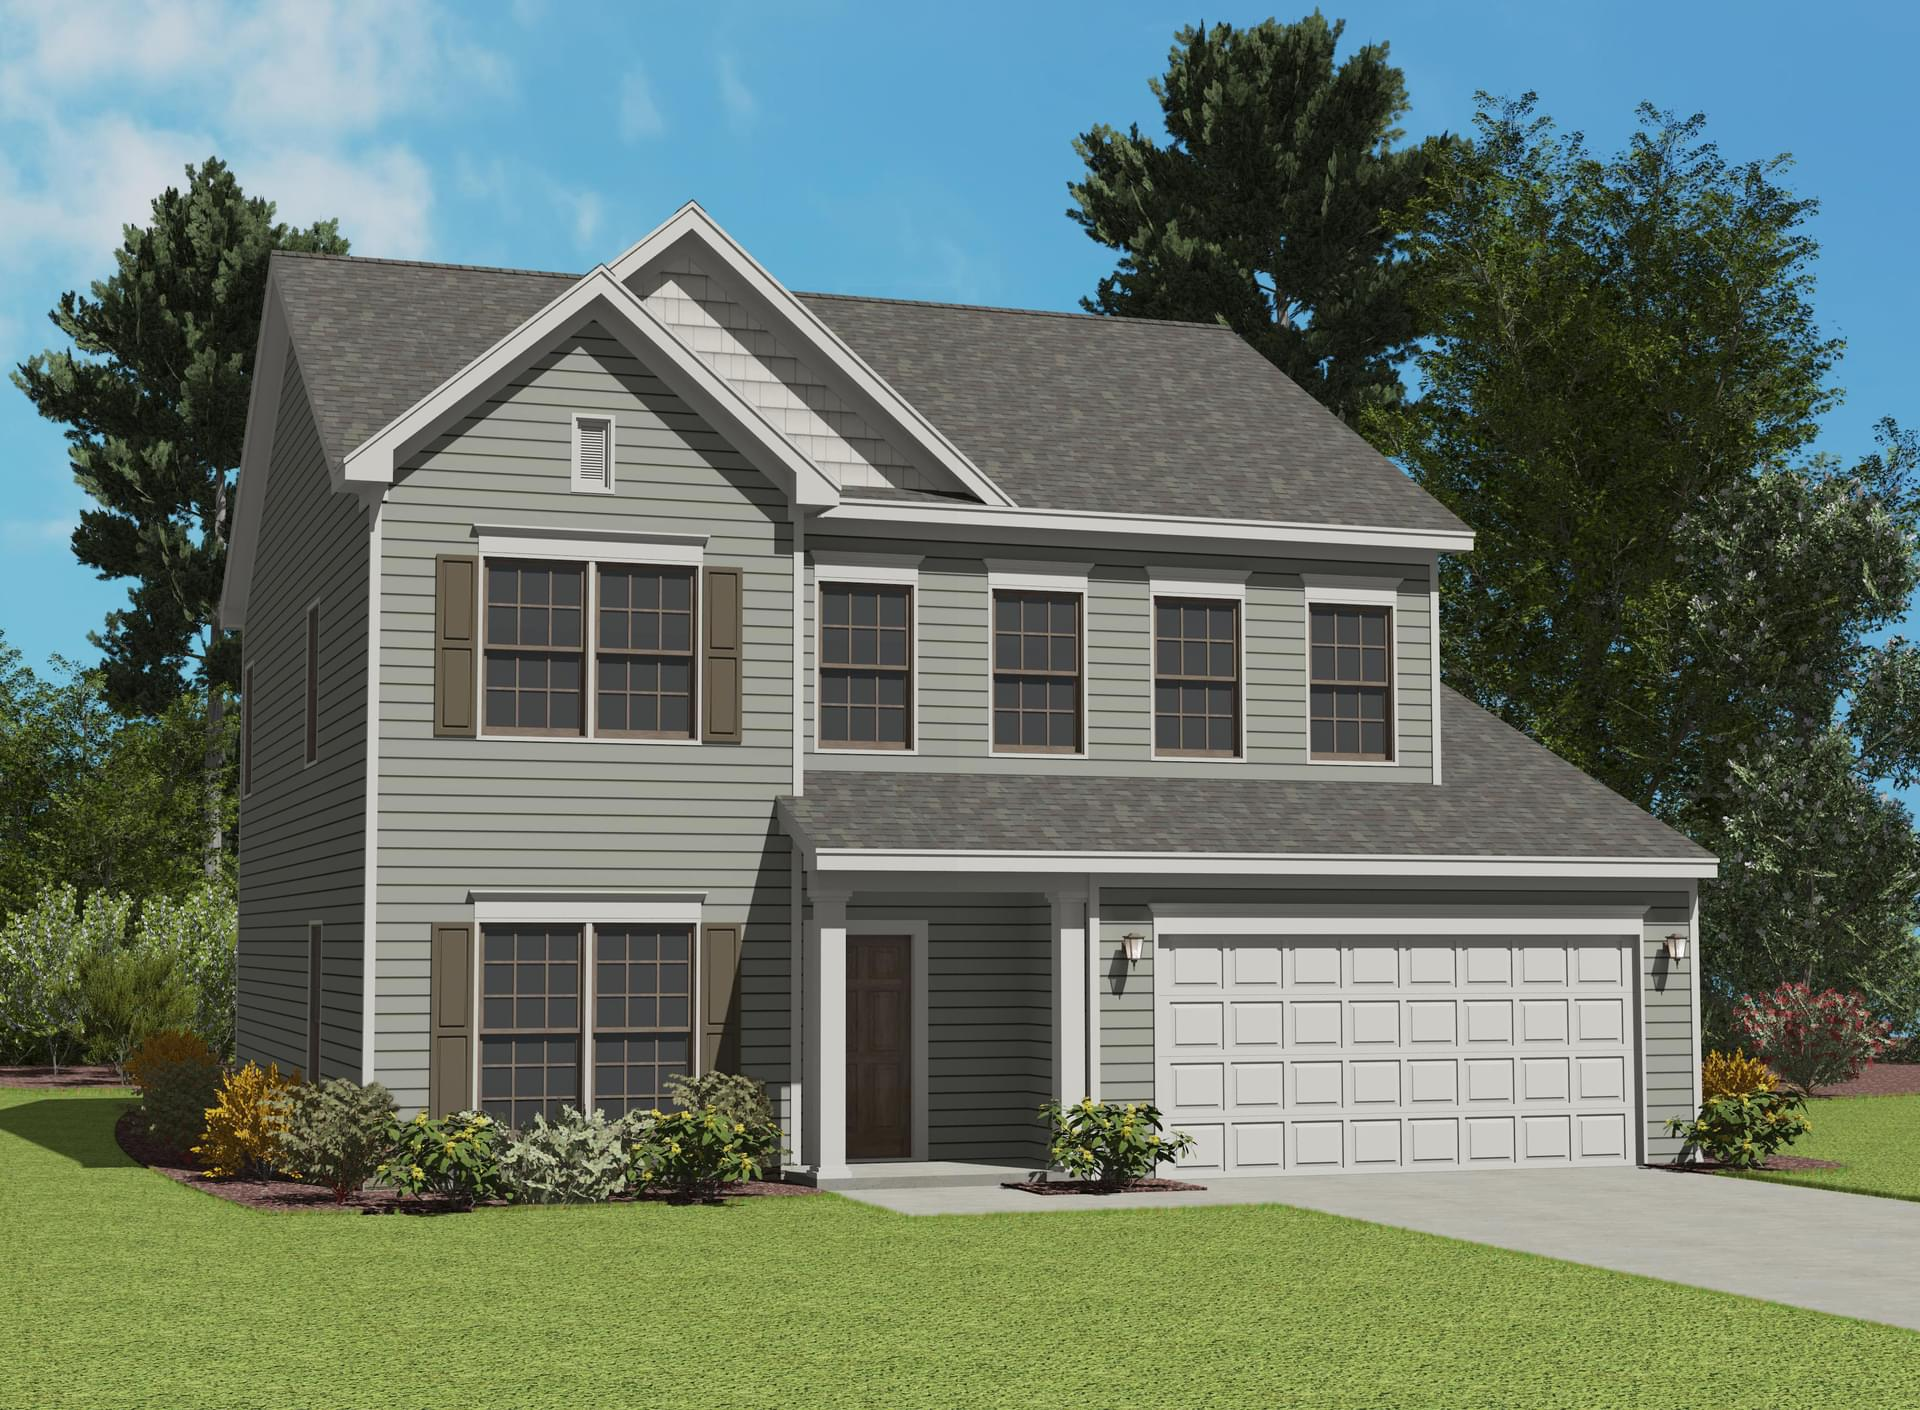 3.82 Lot for Sale in Fuquay-Varina, NC